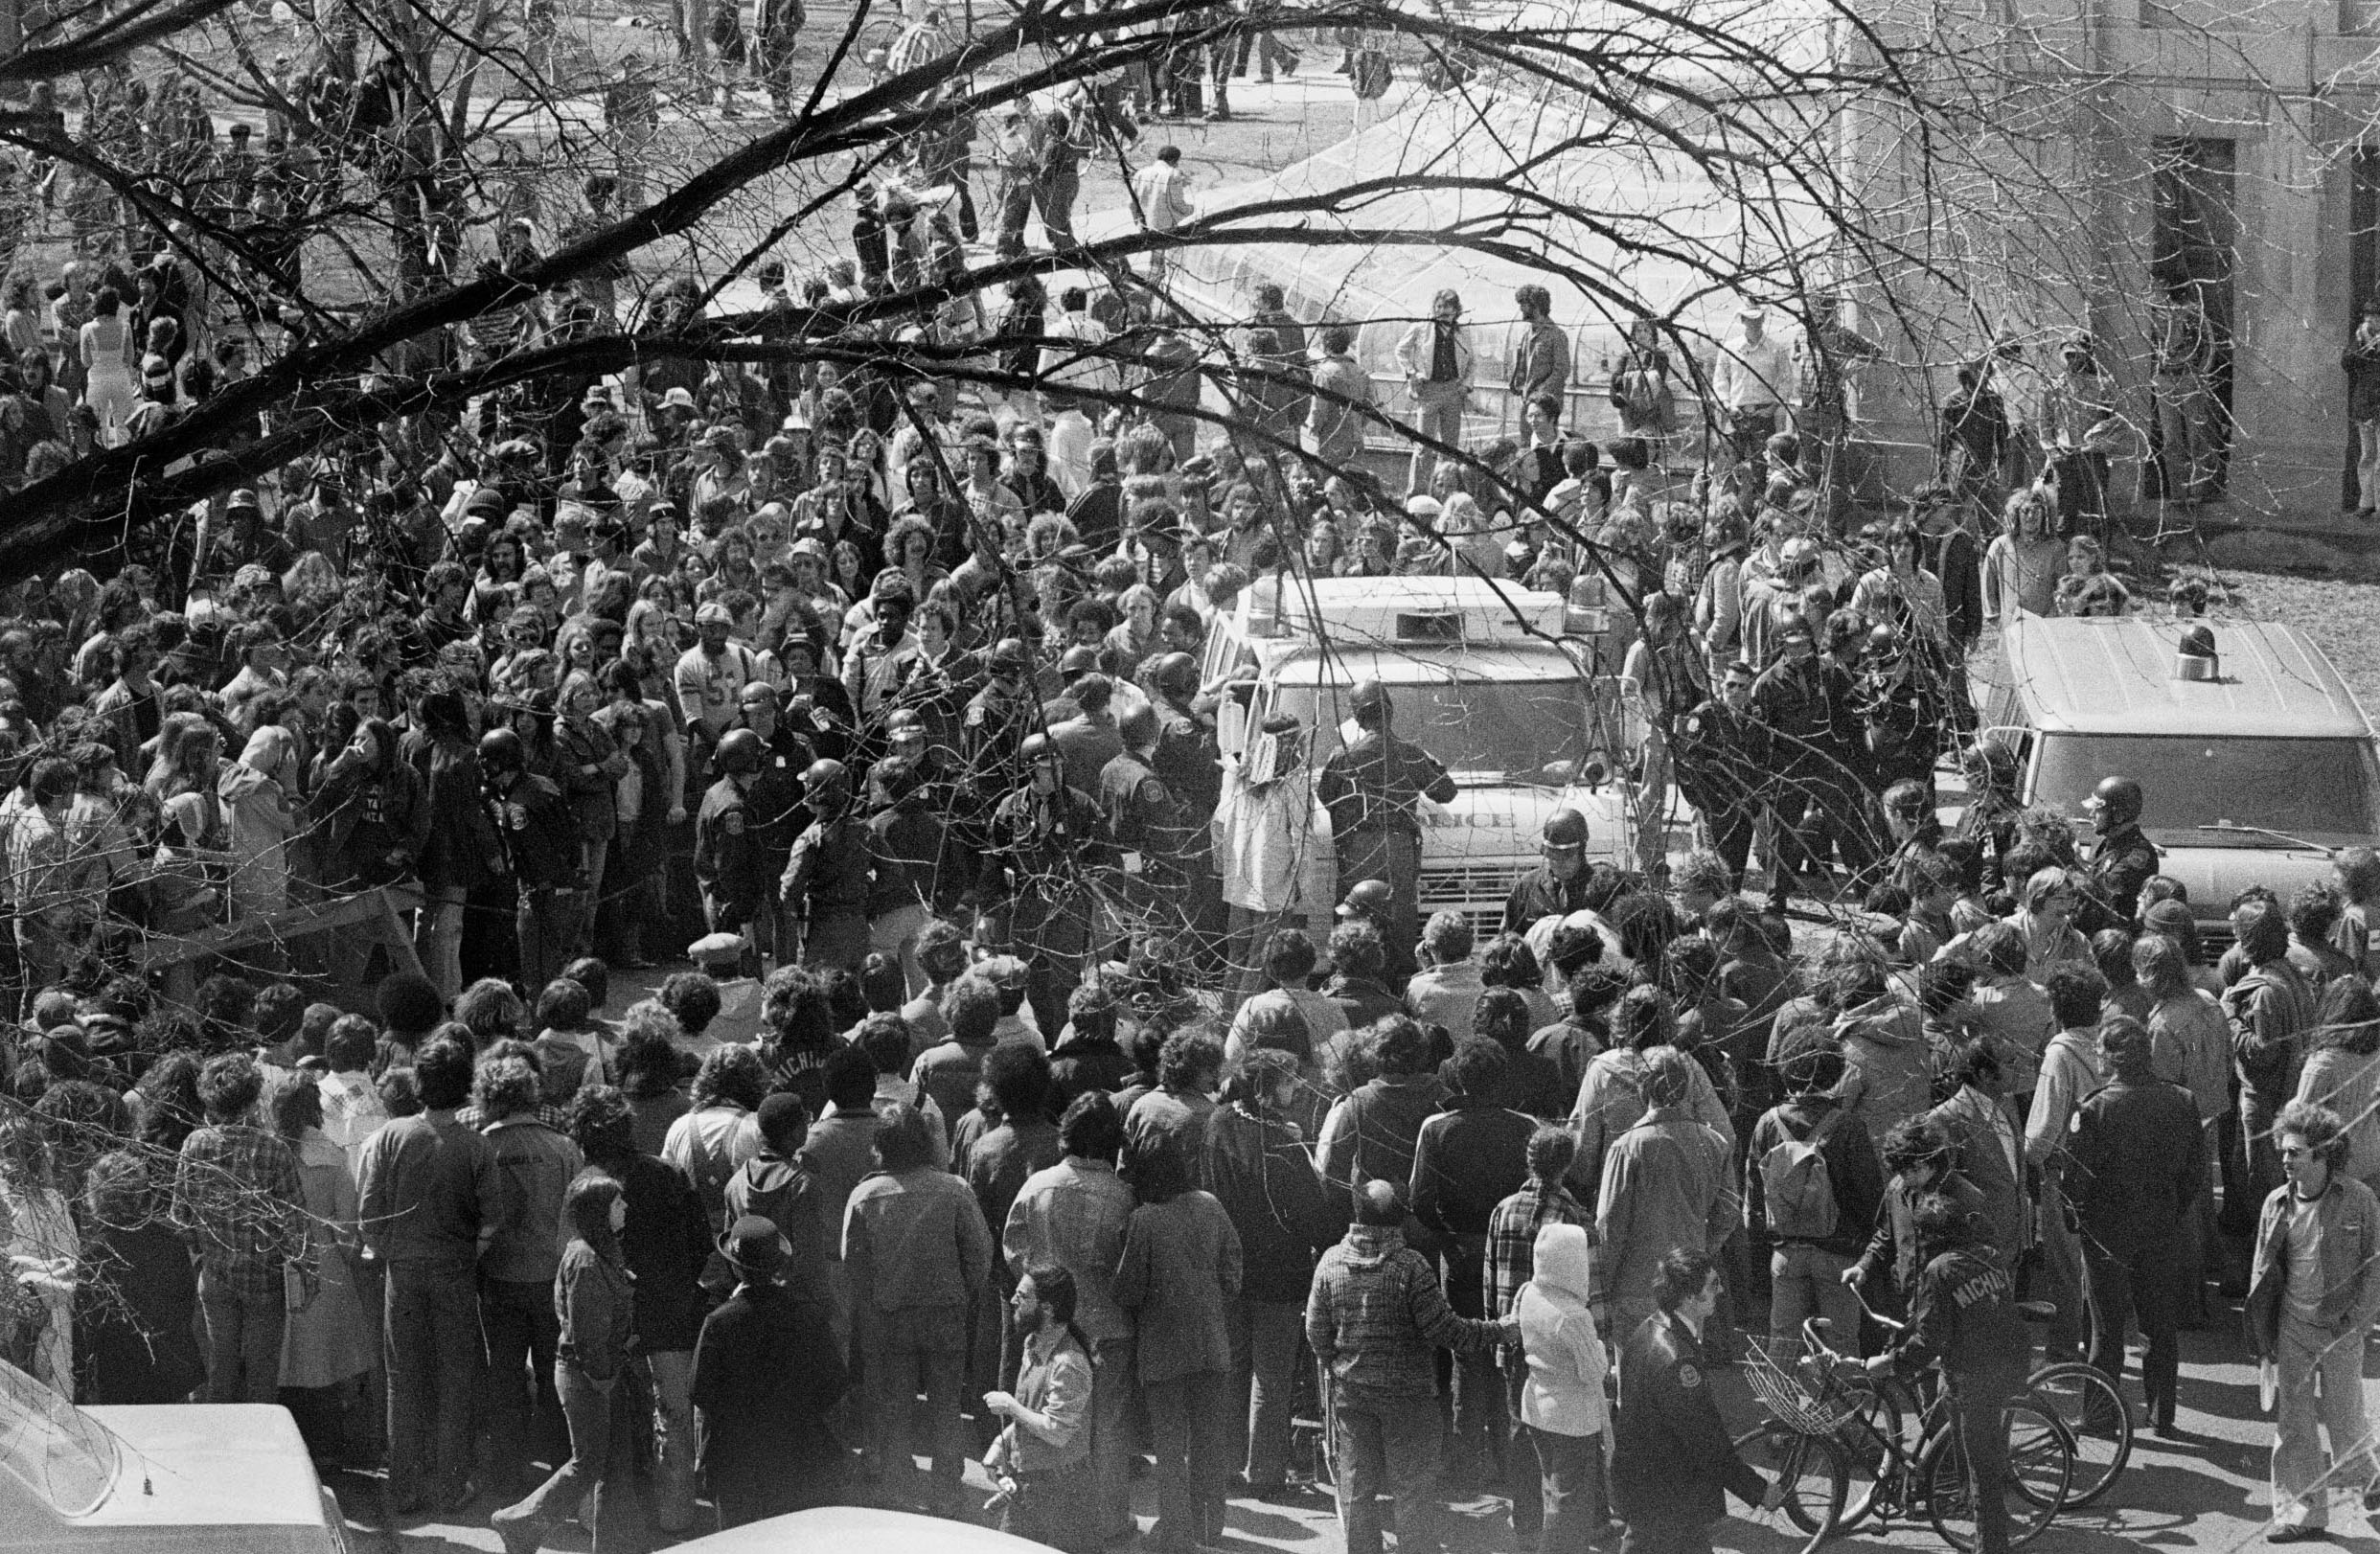 Ann Arbor Hash Bash, April 1978 image